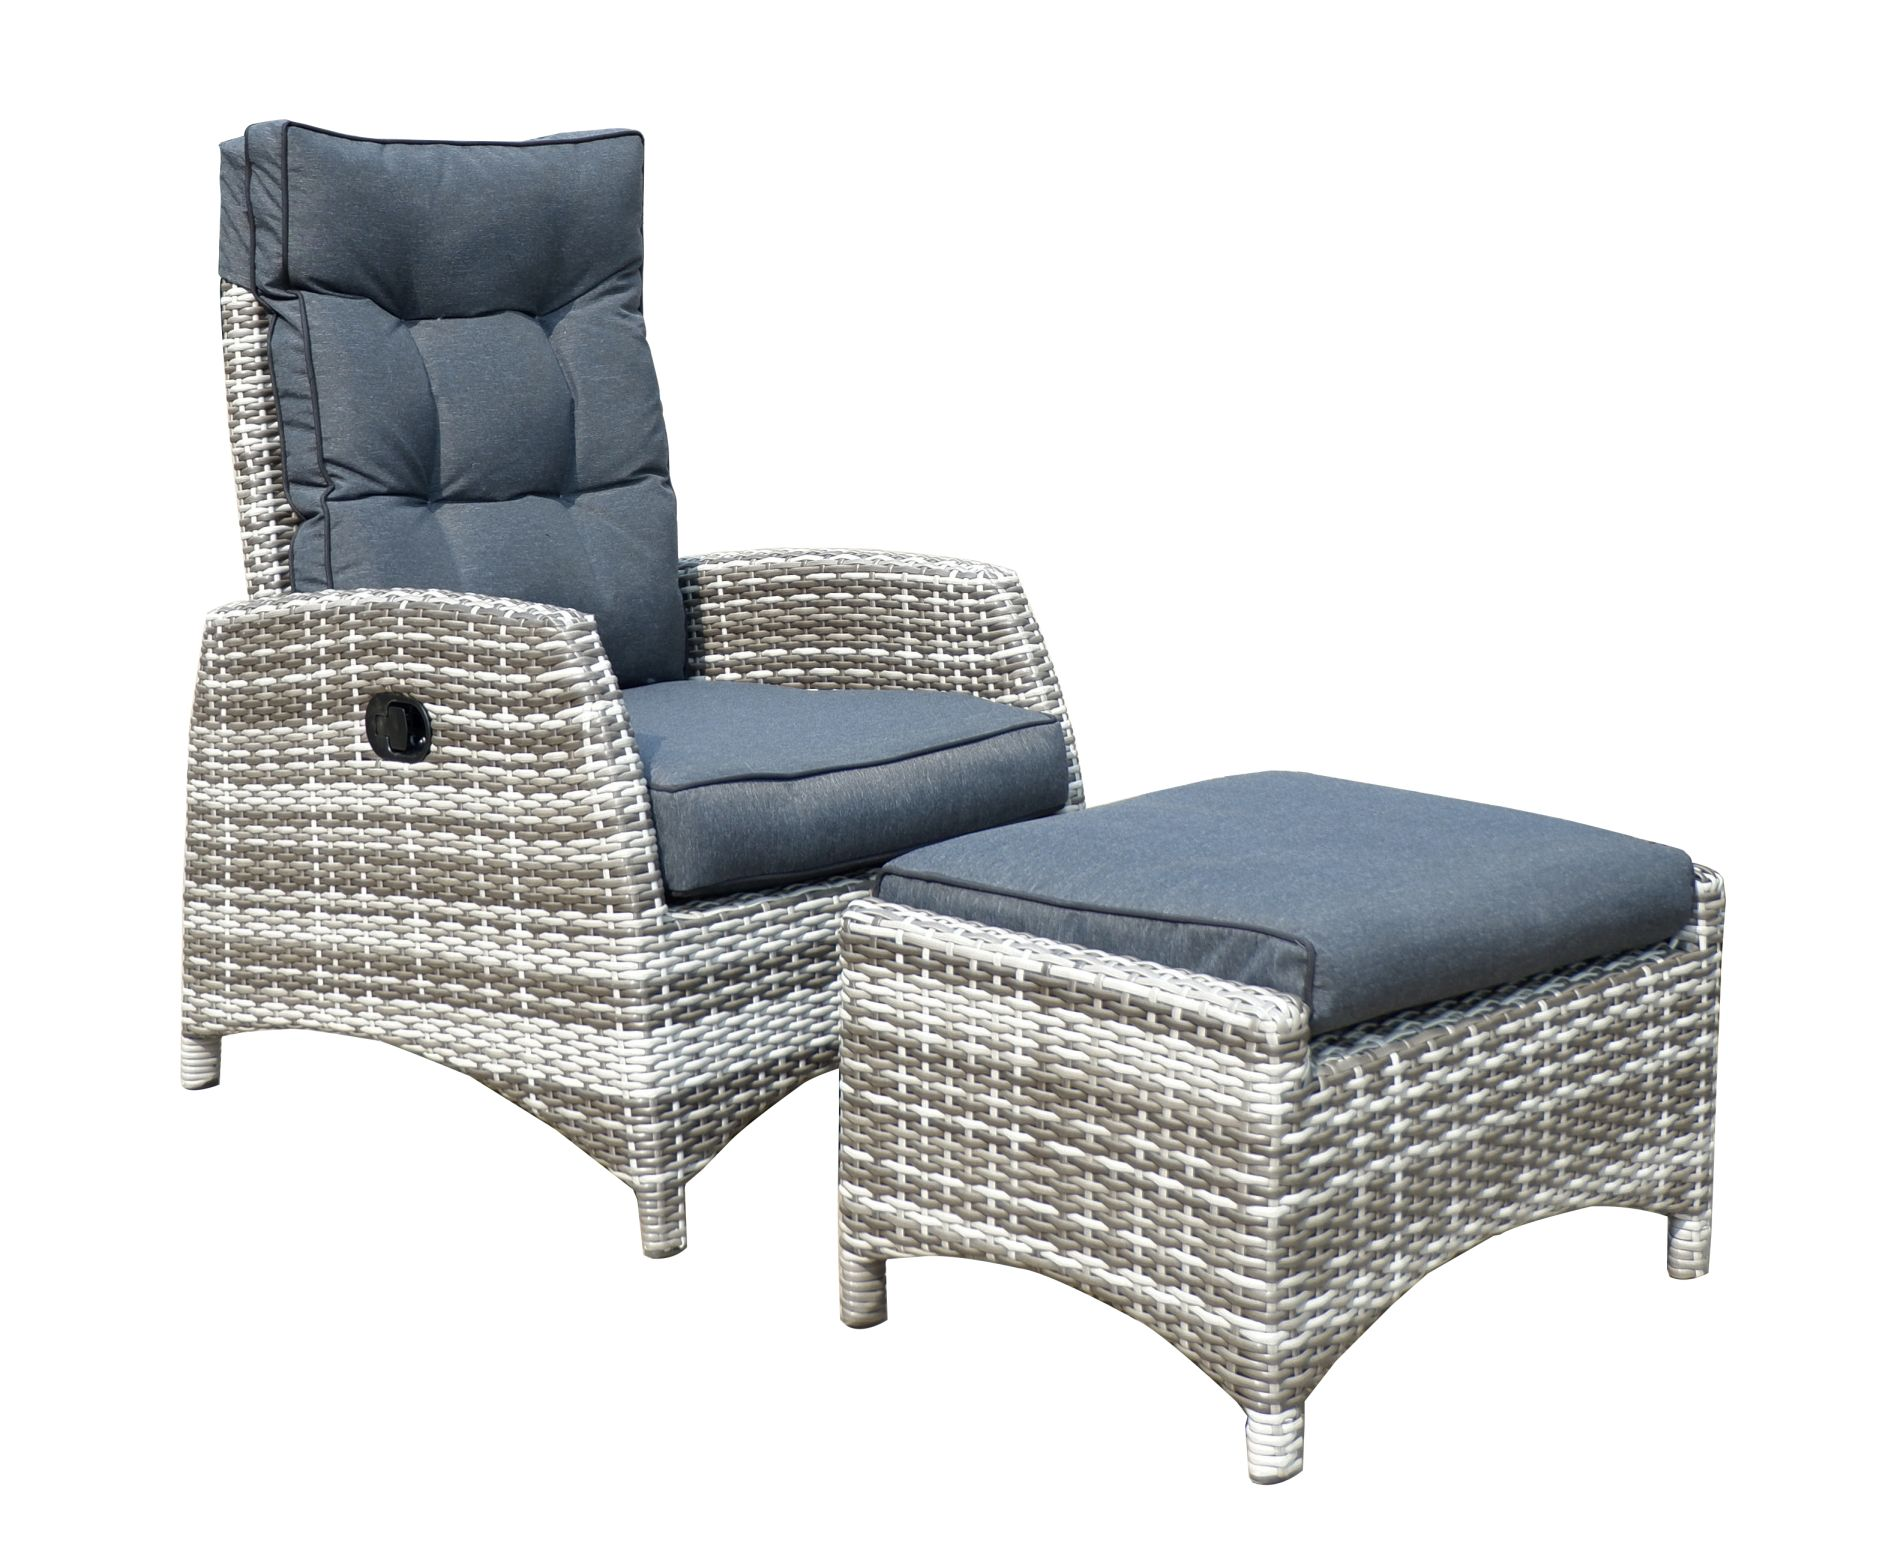 skara polyrattan lounge gartenm bel sitzgruppe silverline. Black Bedroom Furniture Sets. Home Design Ideas